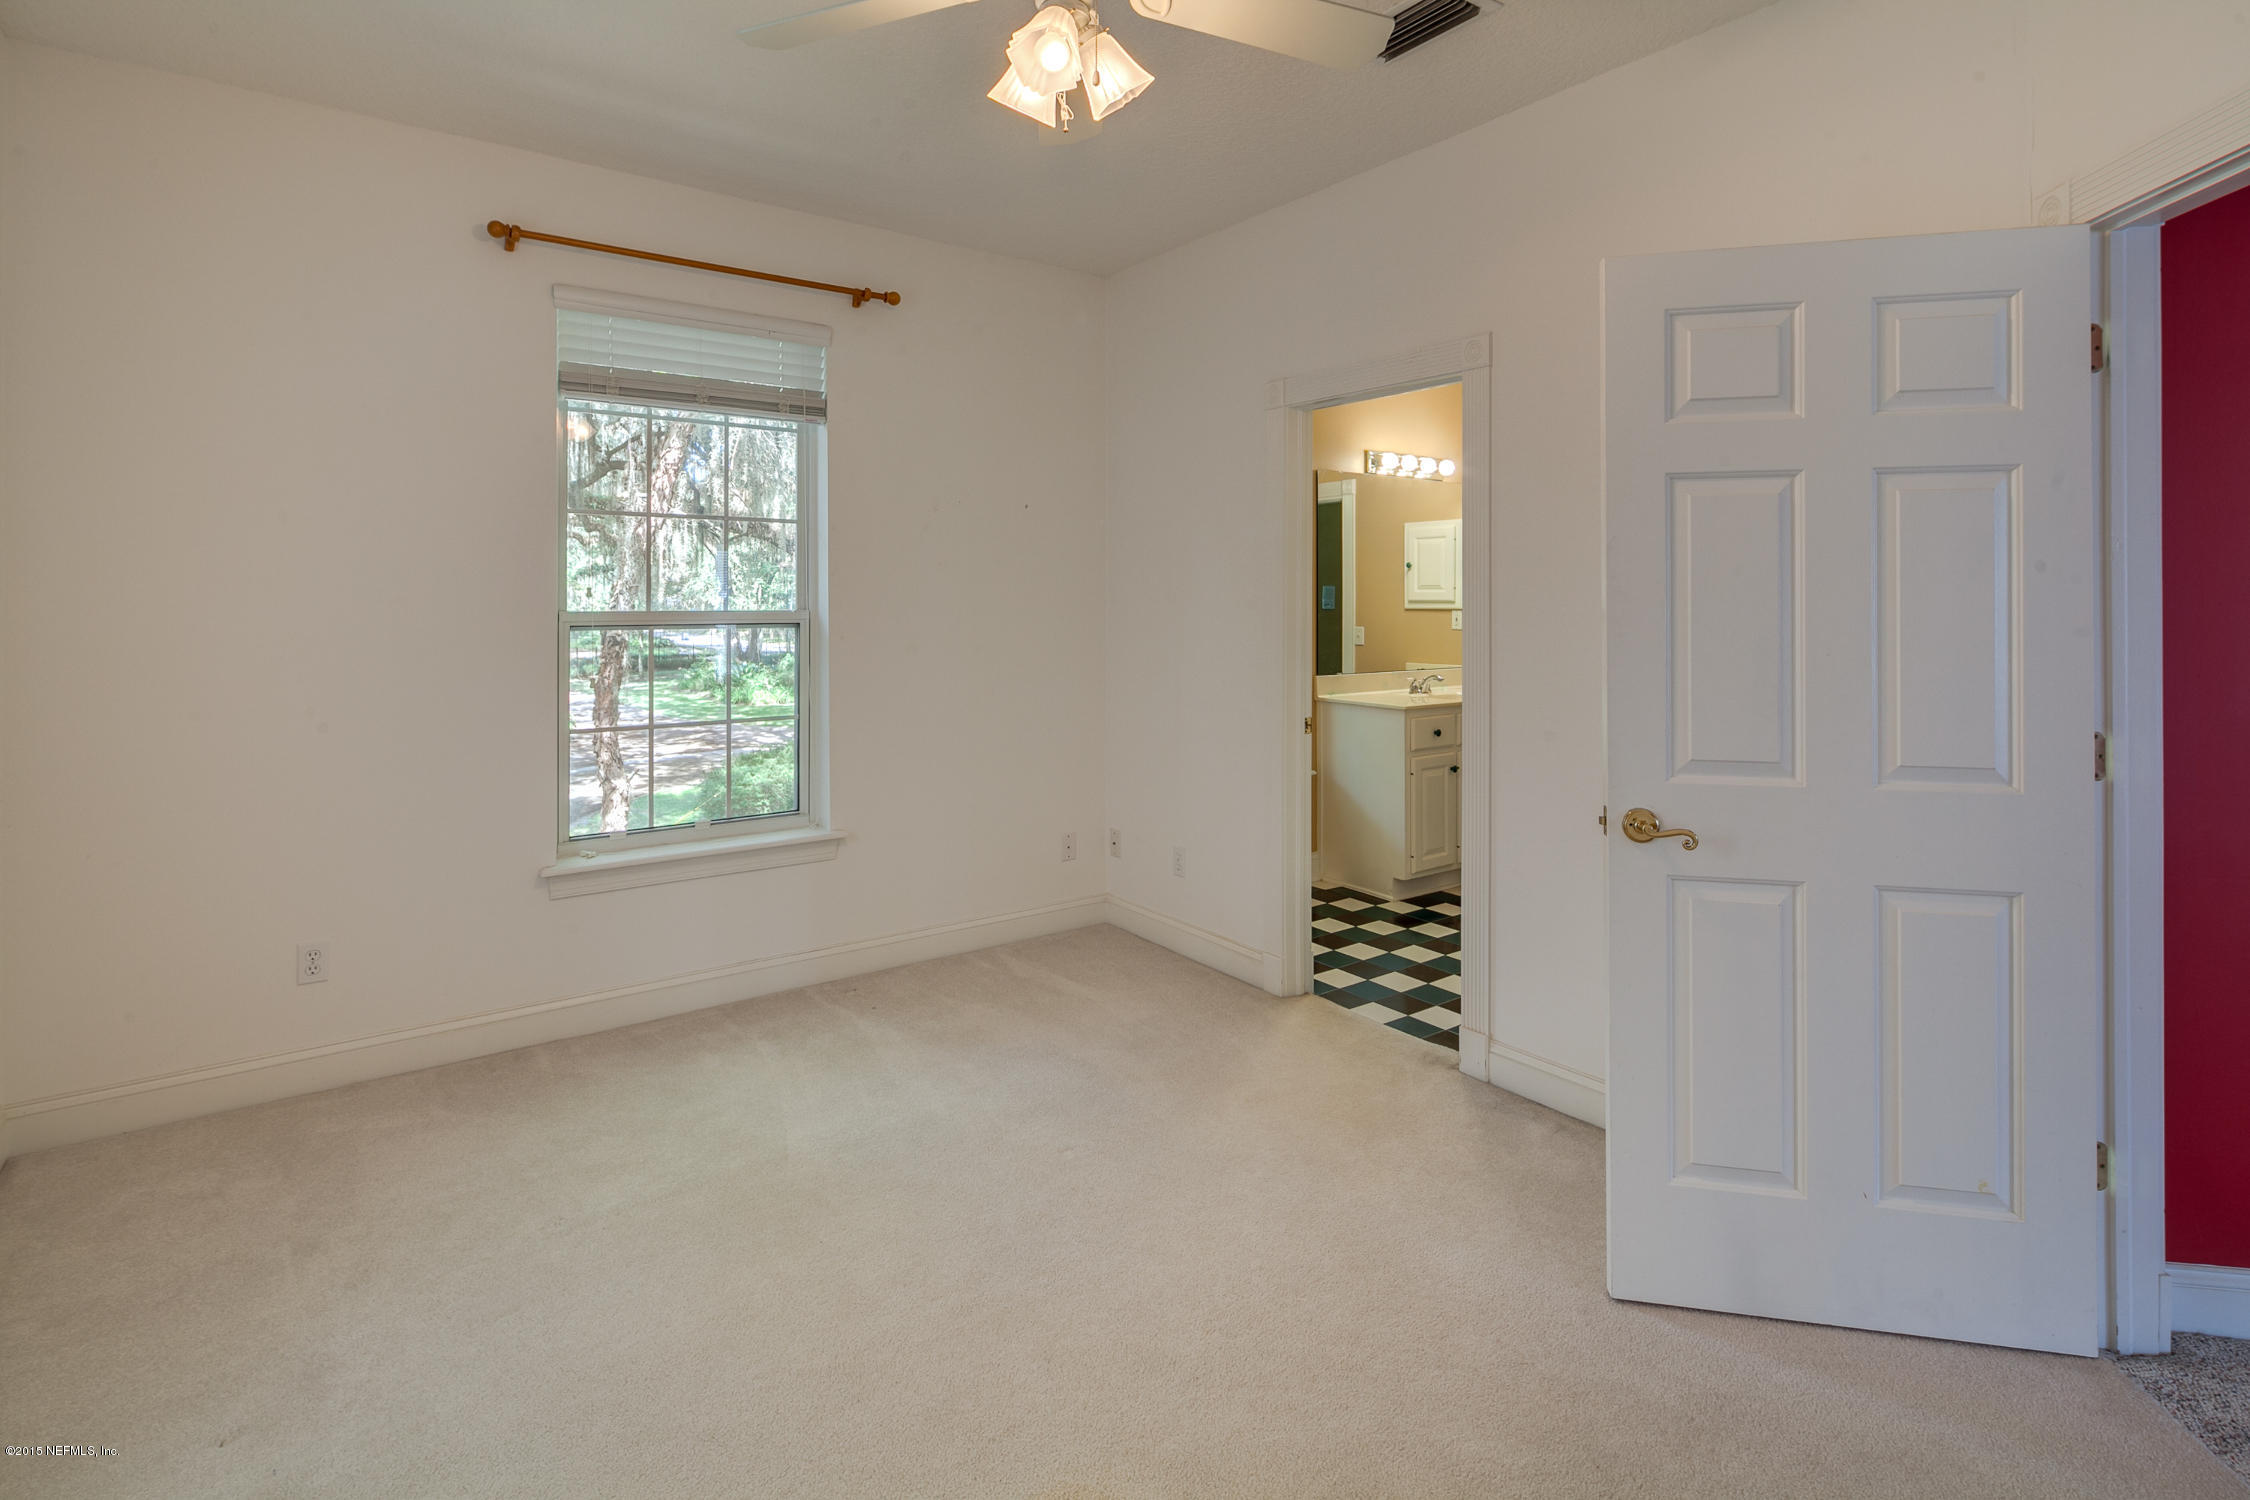 1102 WYNDEGATE, ORANGE PARK, FLORIDA 32073, 6 Bedrooms Bedrooms, ,5 BathroomsBathrooms,Residential - single family,For sale,WYNDEGATE,796769